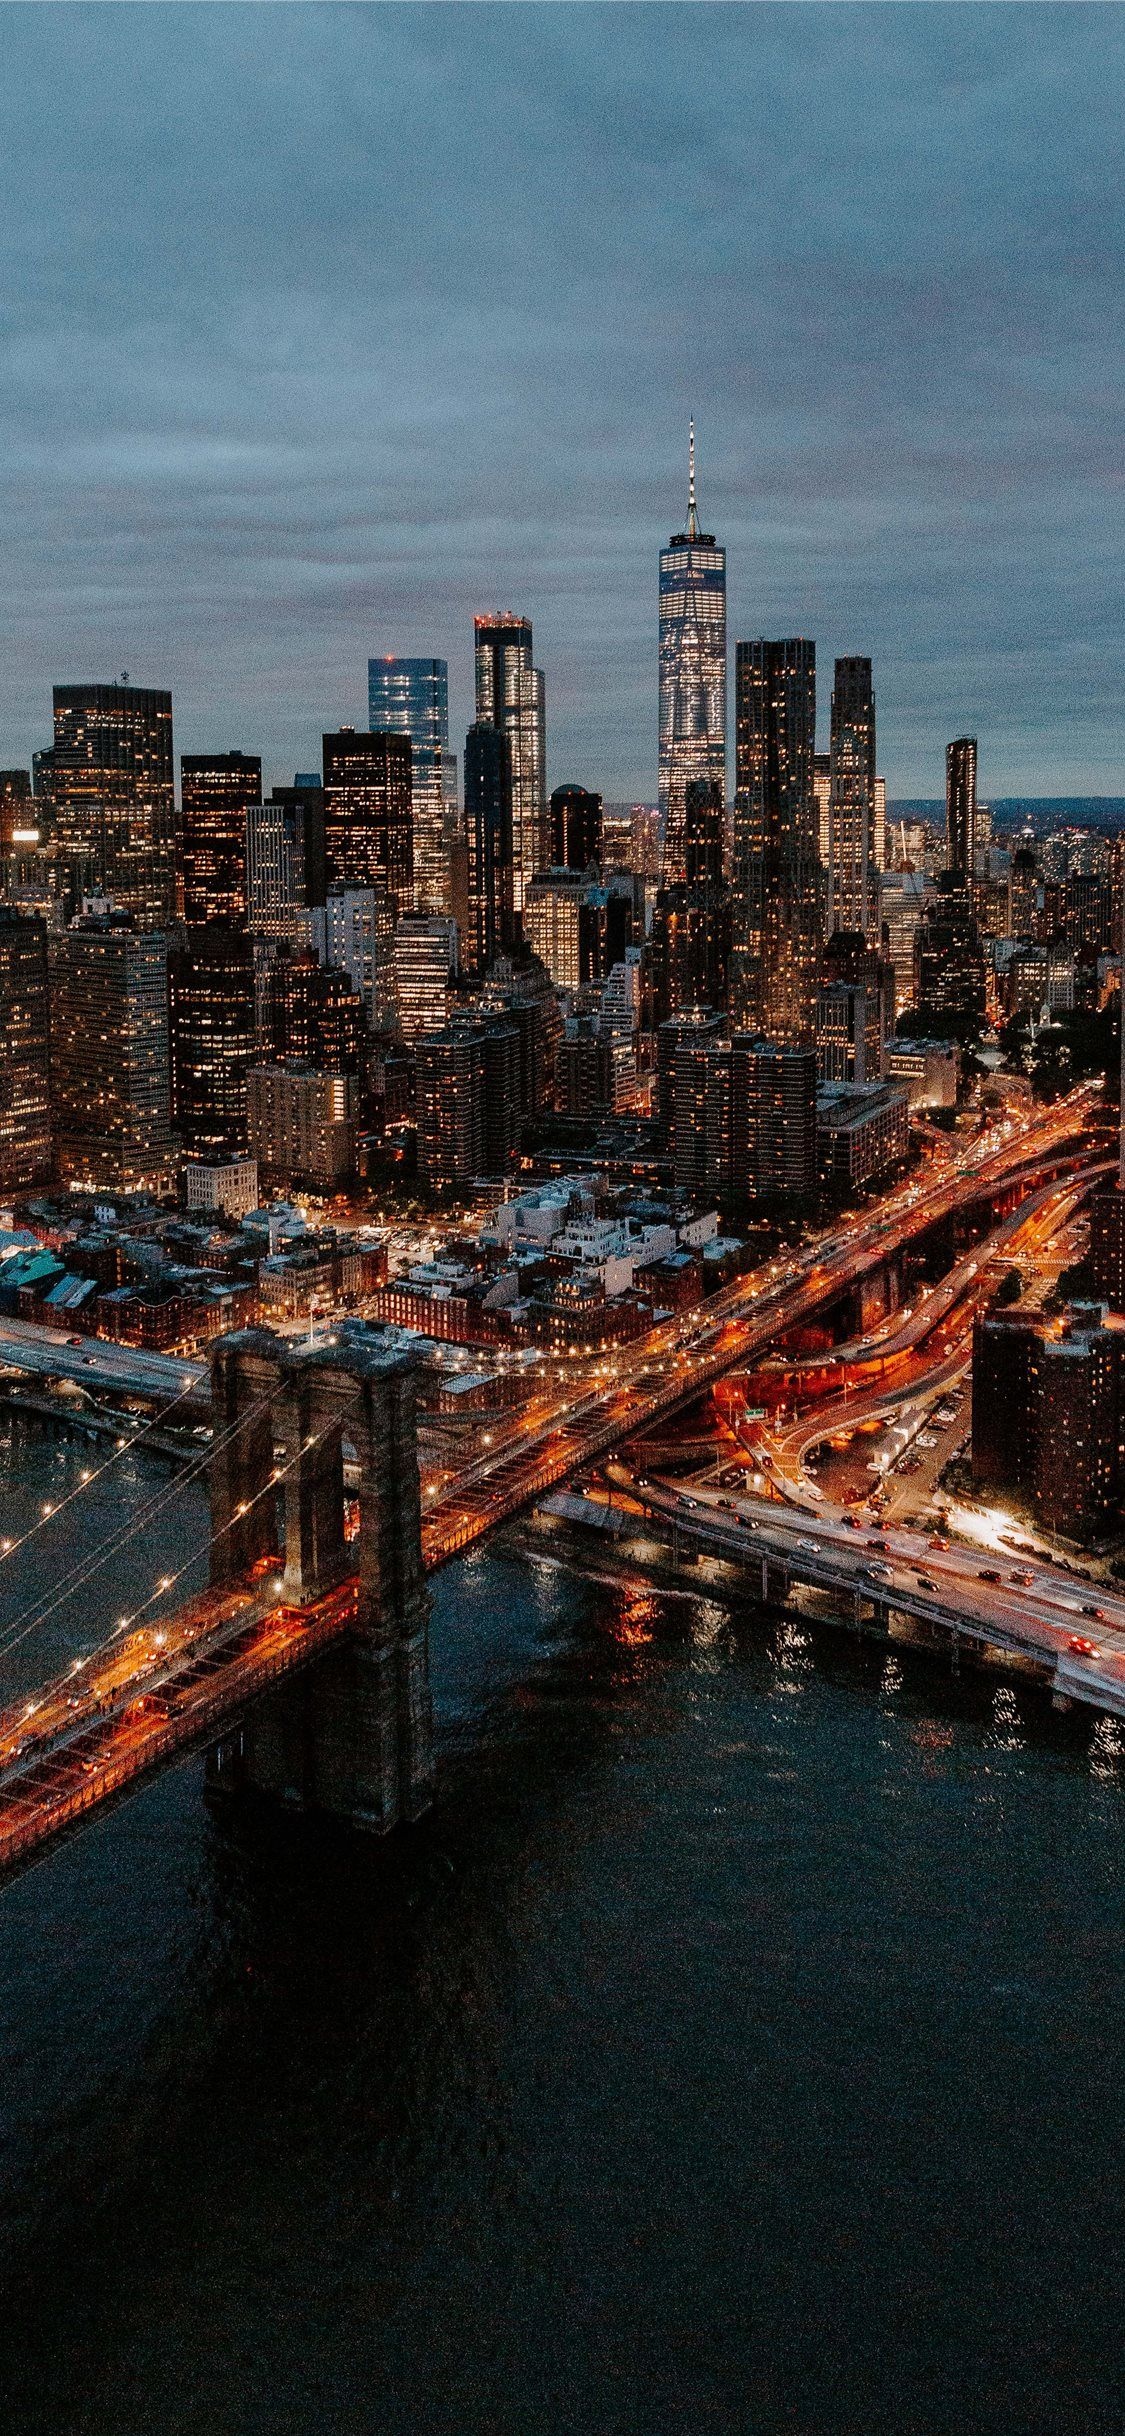 Free Download The Aerial Photography Of Buildings And Bridge Wallpaper Beaty Your Iphone Scenery City City Aesthetic New York Wallpaper Travel Aesthetic